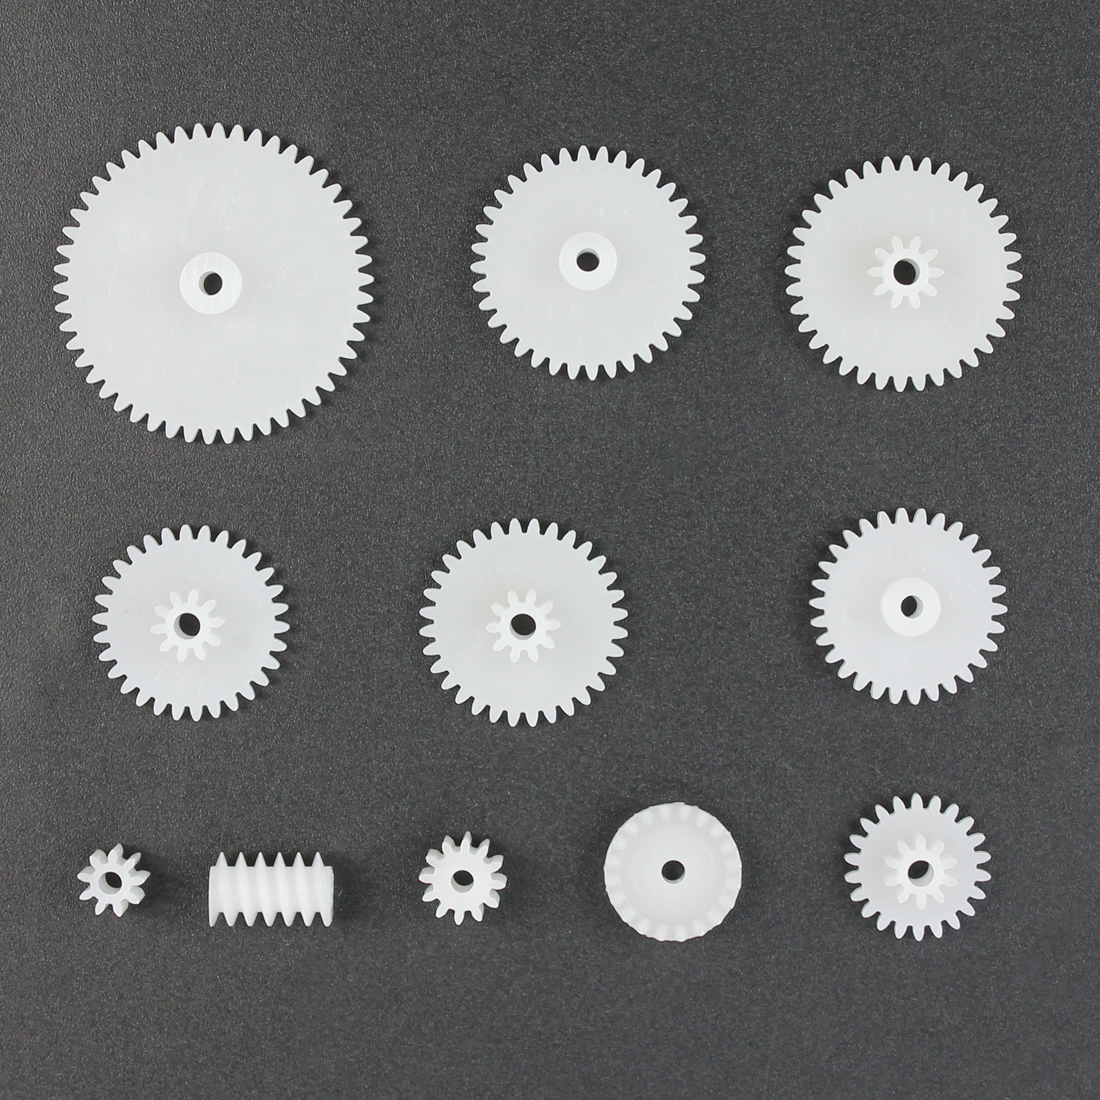 11 Types Plastic Motor Gear Modulus 0 5 Science Gear DIY Model Toy  Accessories for 2mm Shaft